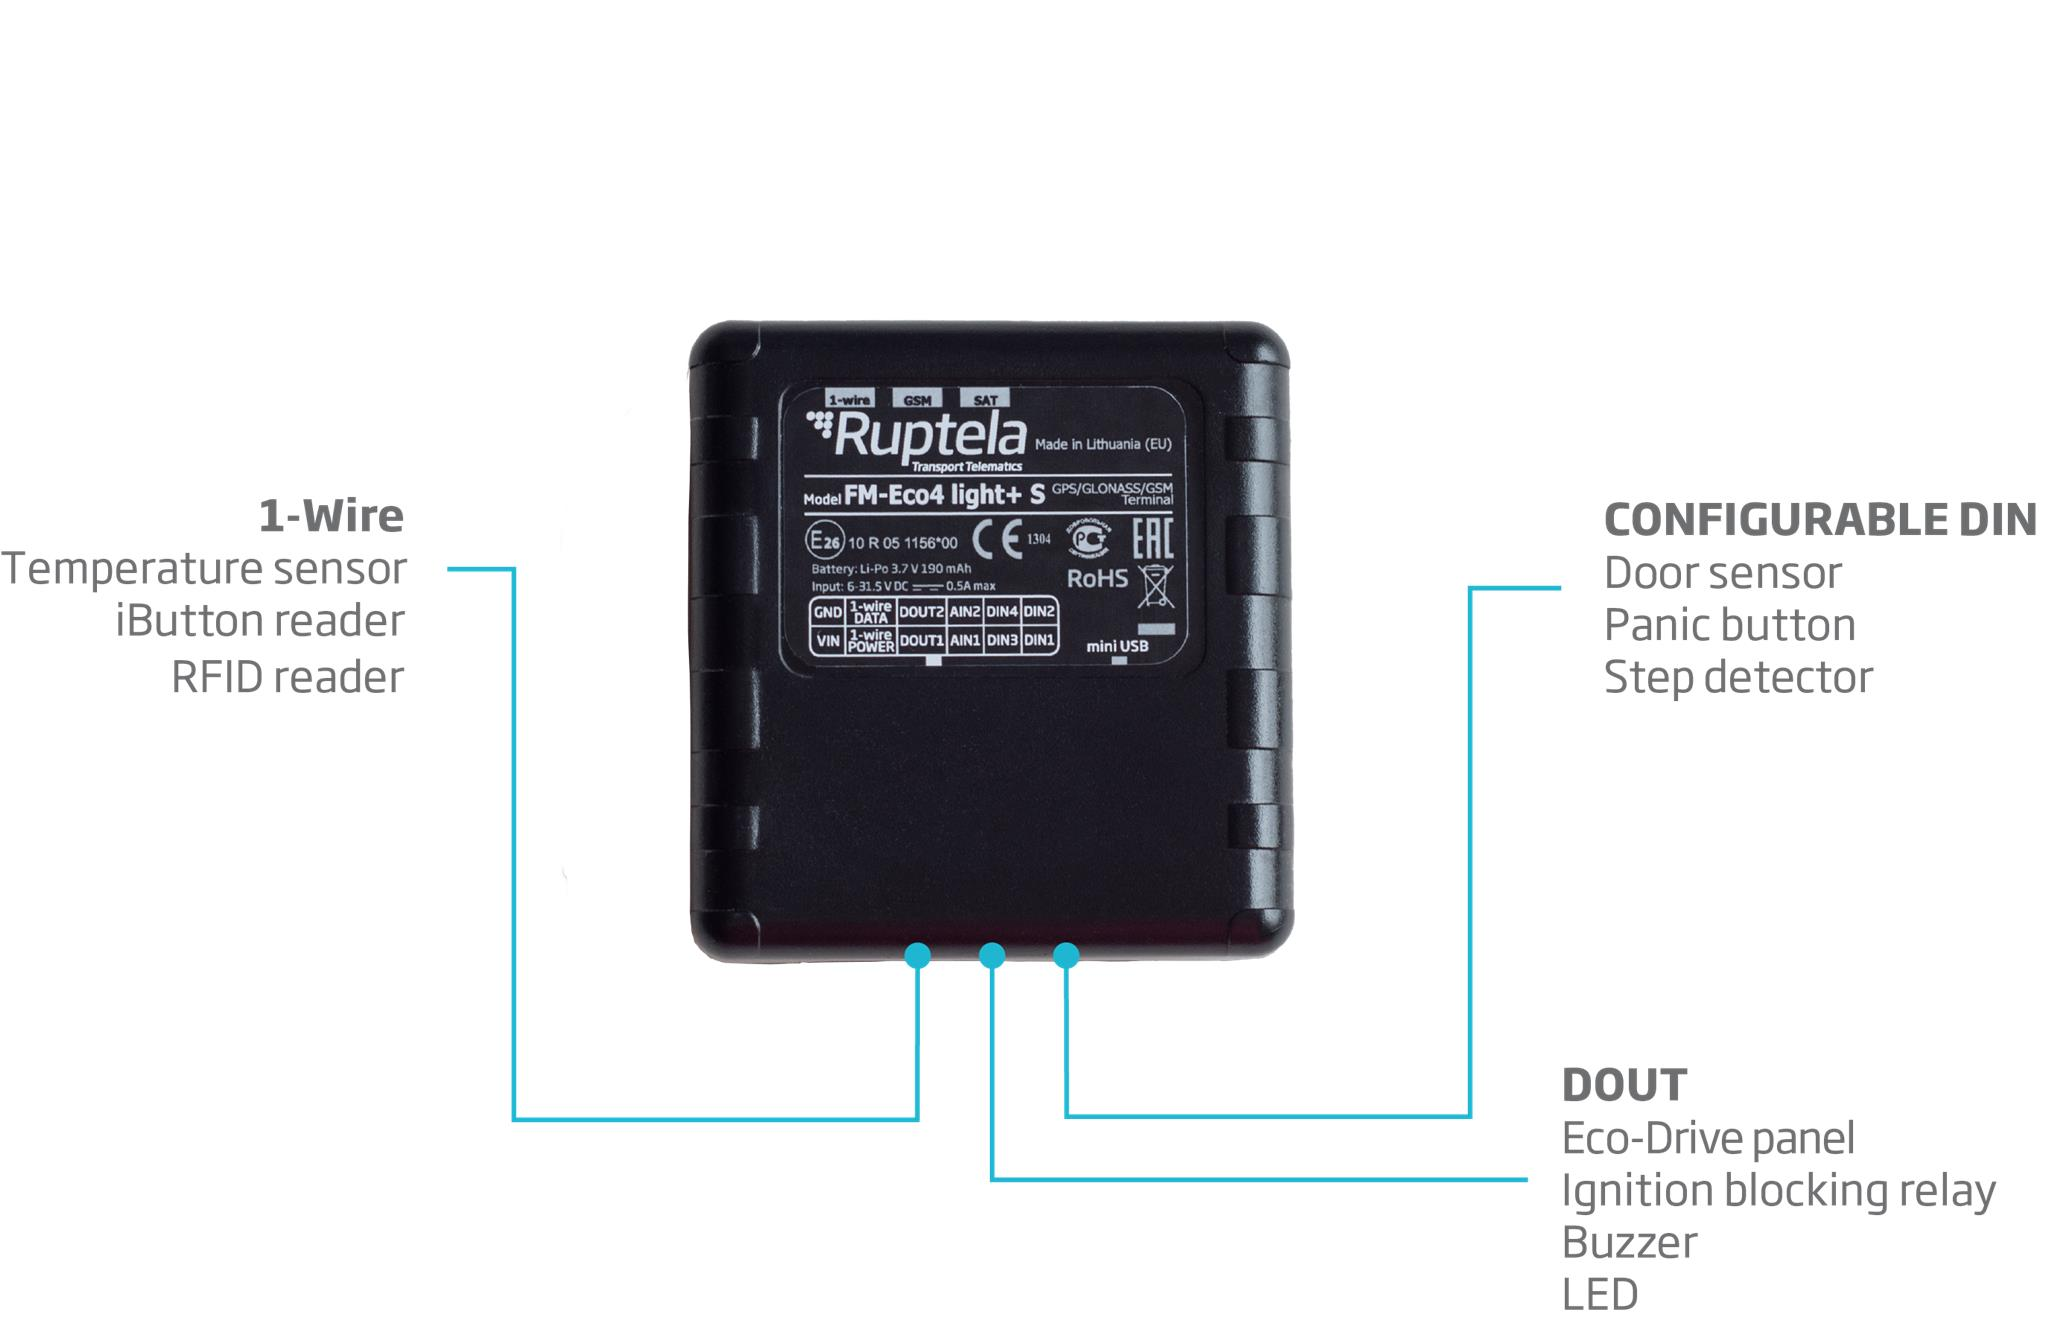 What's new in FM-Eco4 light S series?